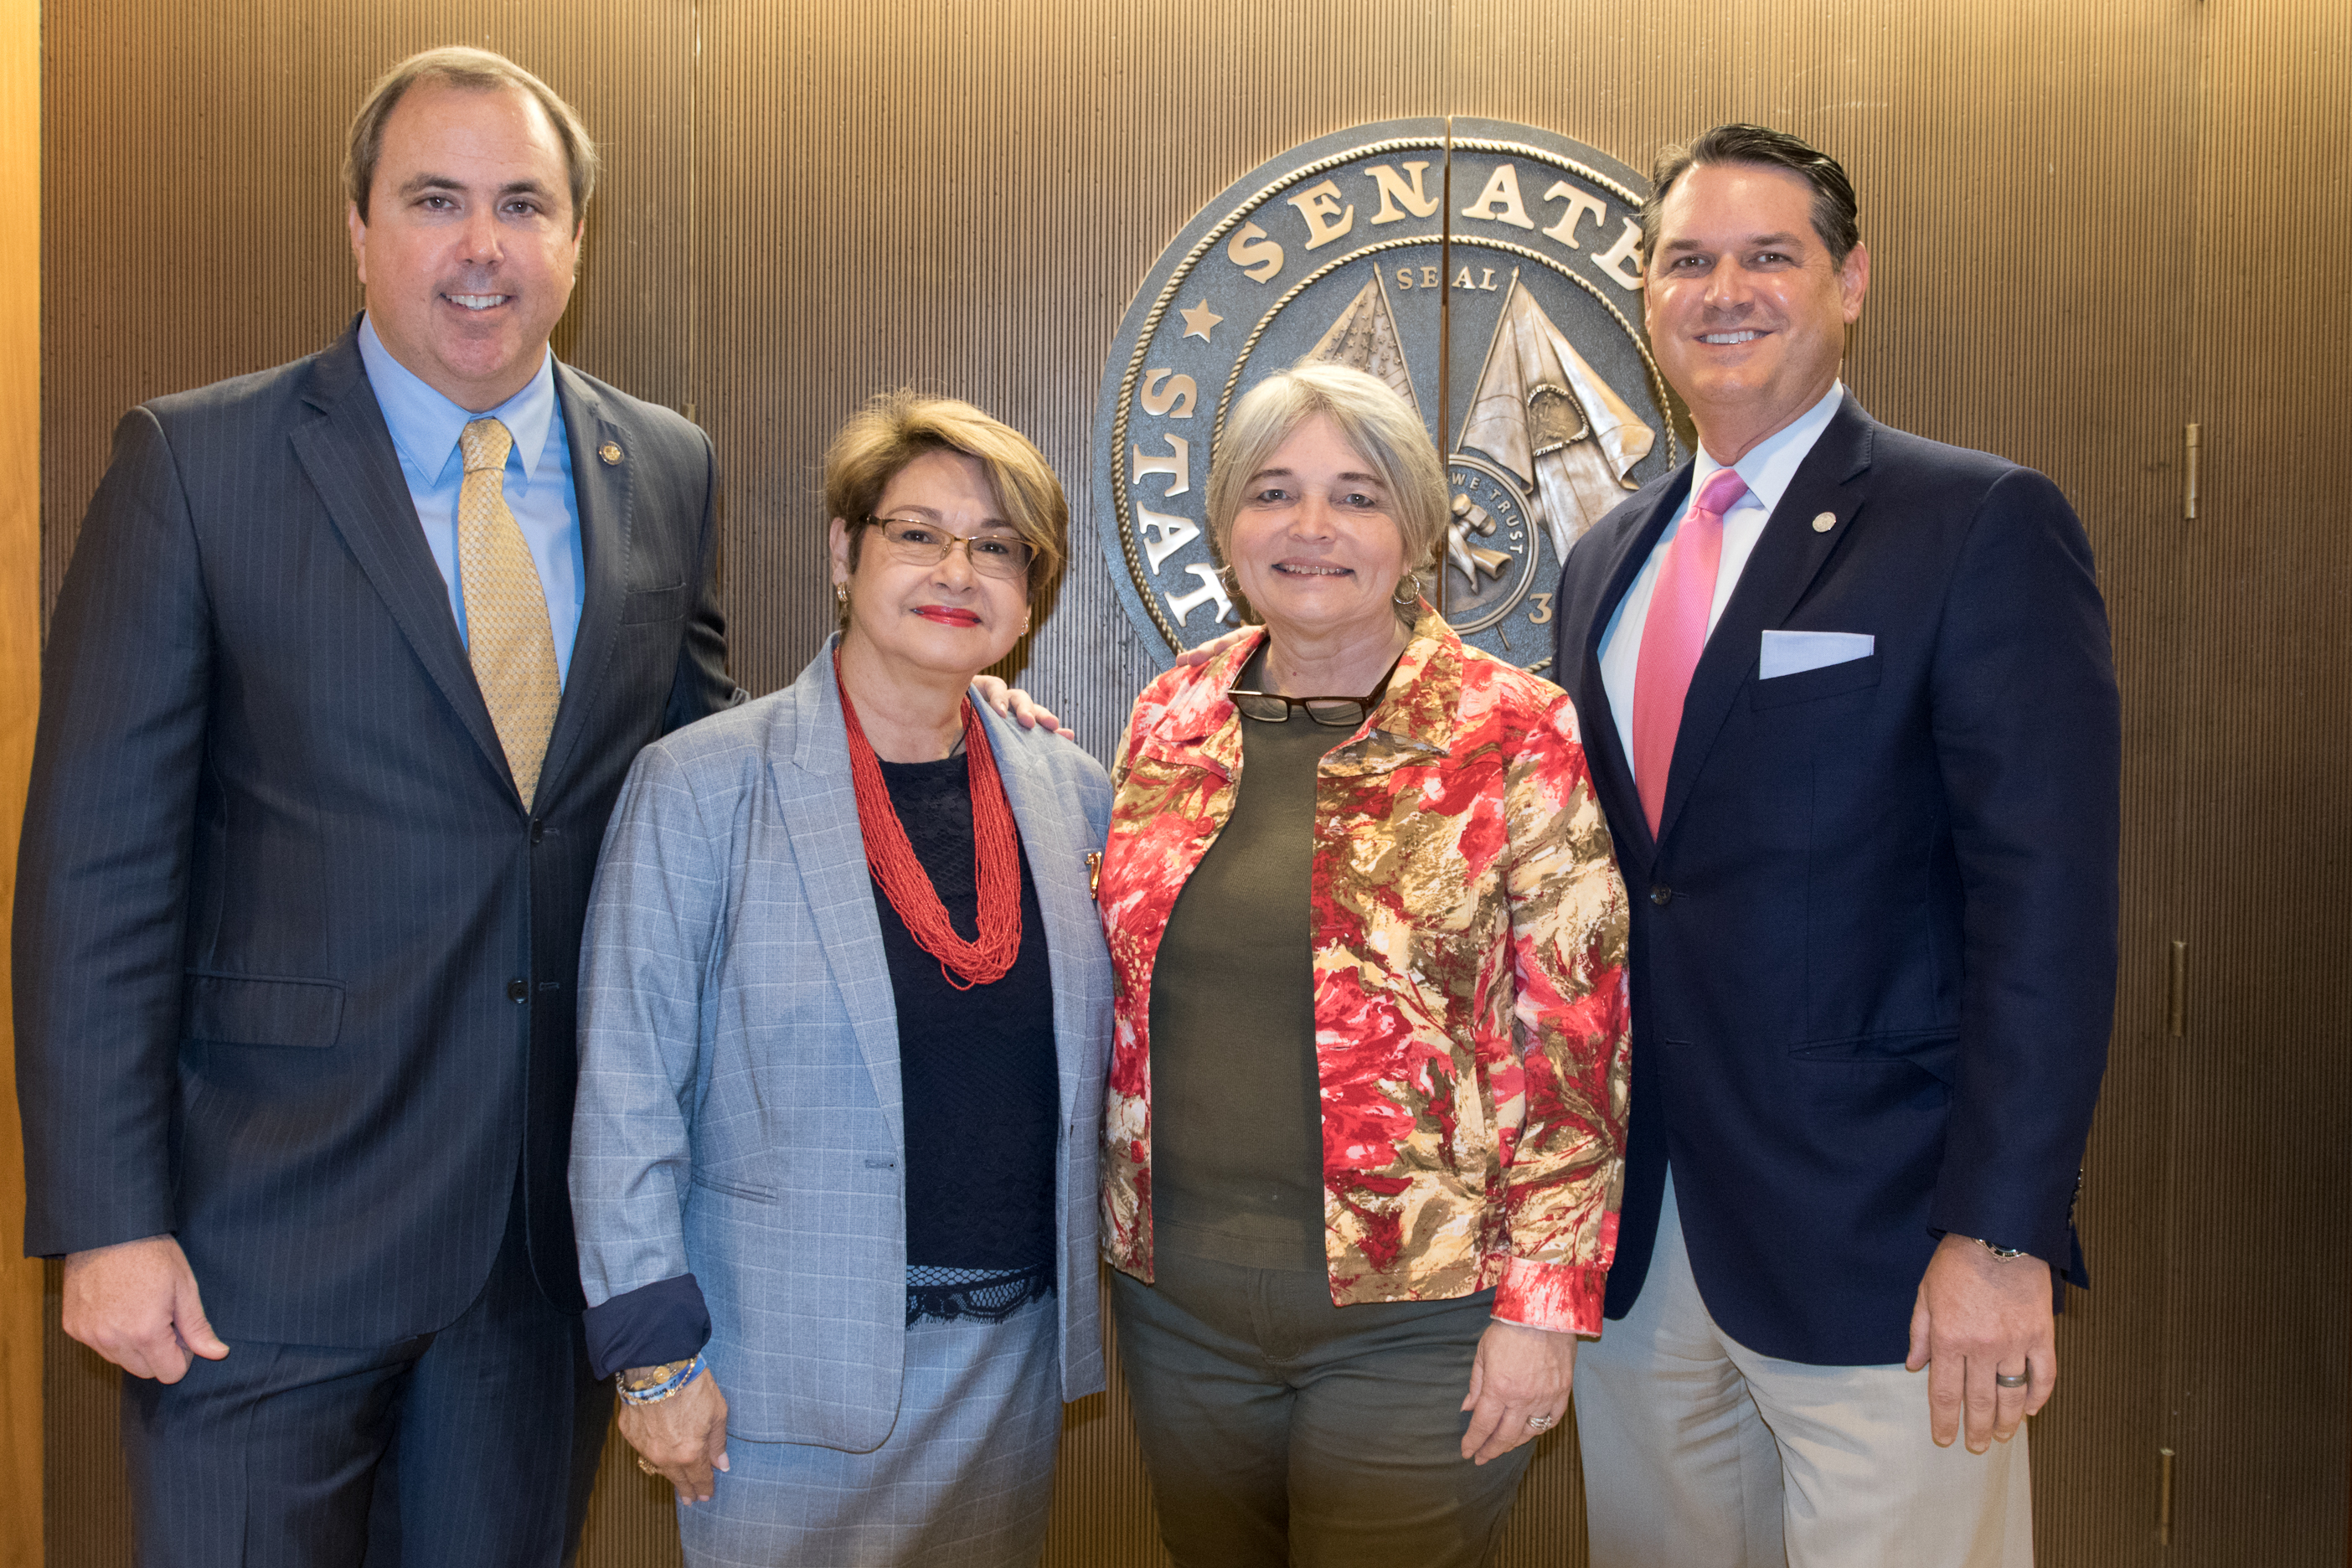 Legal Immigrants for America (LIFA) is proud to have joined forces with The Remembrance Project and Floridians for Immigration Enforcement (FLIMEN). Ban Sanctuary Cities bill in the state of Florida.